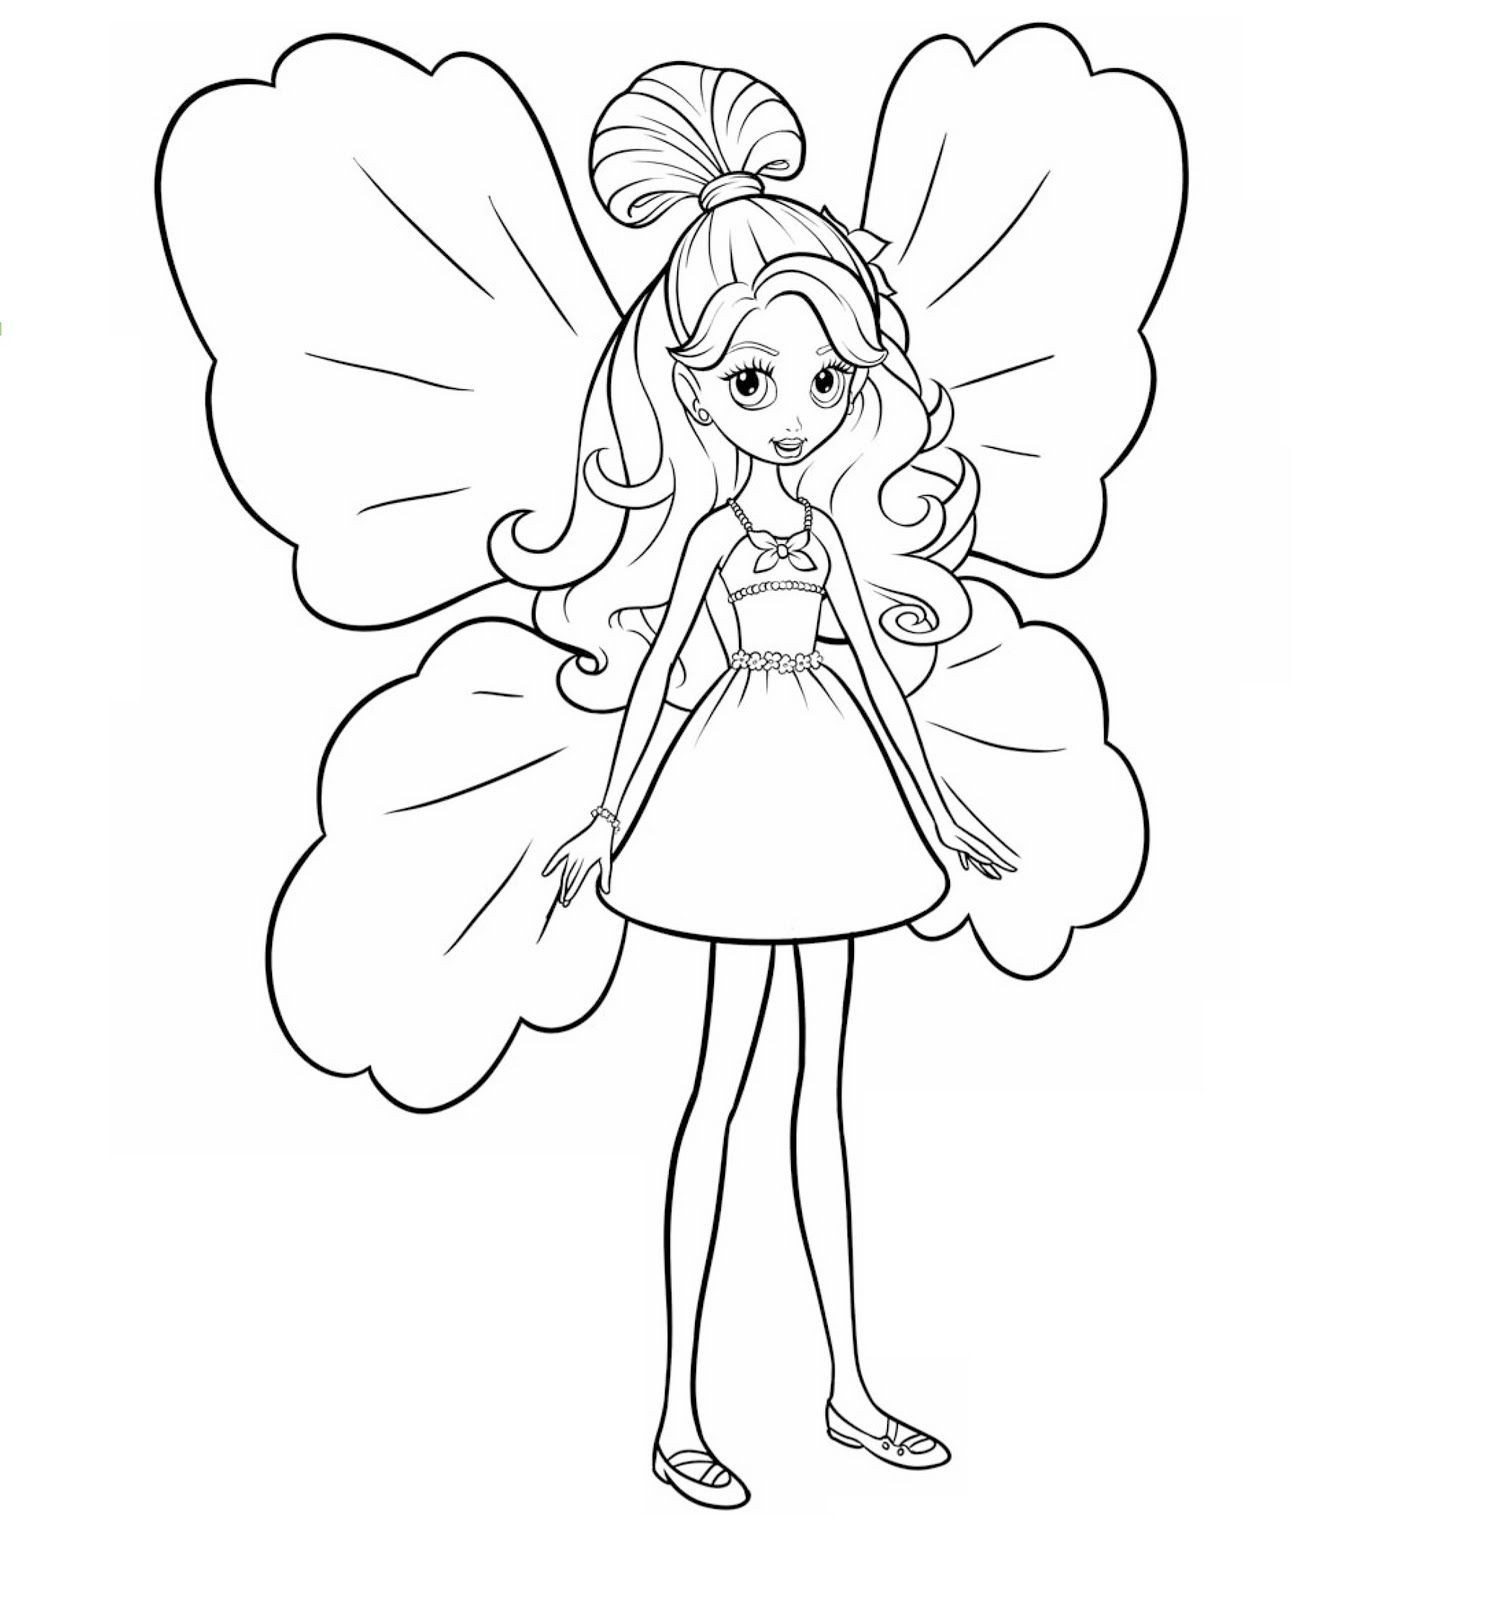 Fairy girl drawing and coloring pages pinterest fairy, digi Barbie Ballerina Coloring Pages Coloring Pages for Boys Ferngully Coloring Pages